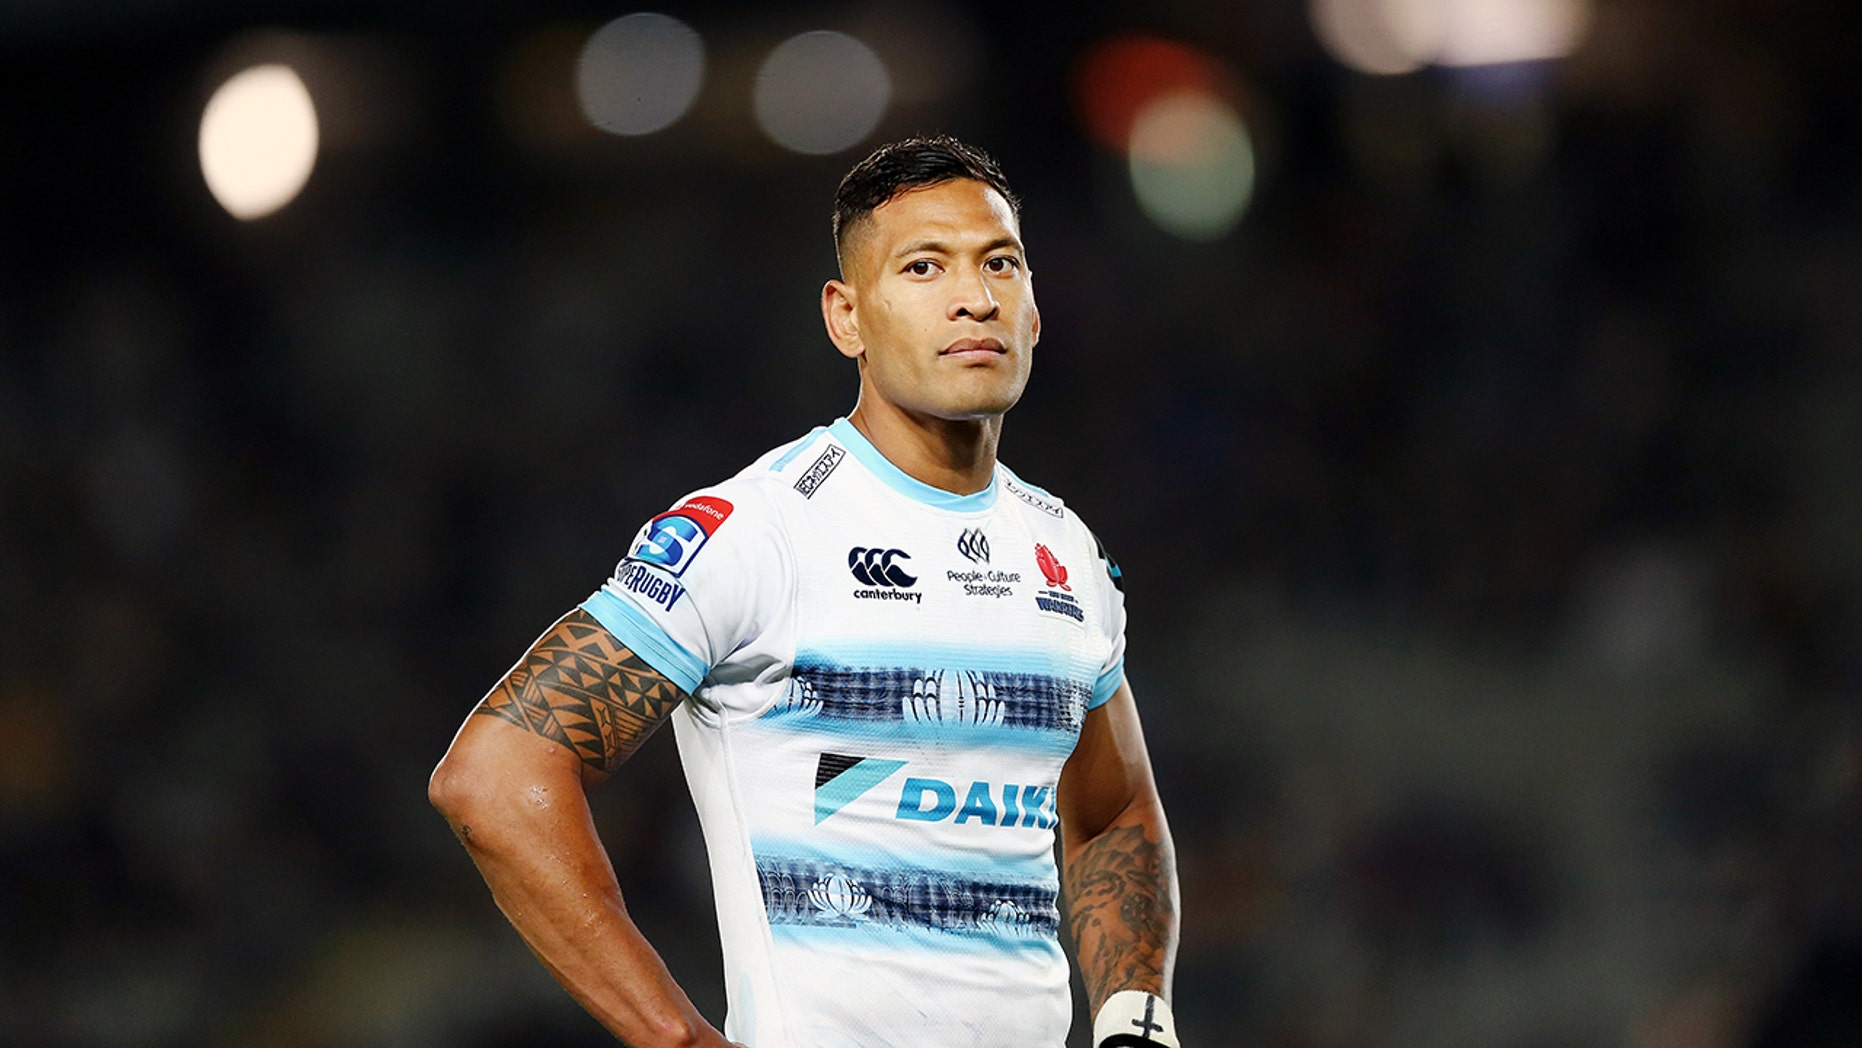 Israel Folau is in the fight of his life after being sacked for posting a Bible verse on his Instagram. Now he is suing for religious discrimination in the workplace and was kicked off GoFundMe but has raised over $1.5 million on an alternative platform. (Photo by Anthony Au-Yeung/Getty Images)